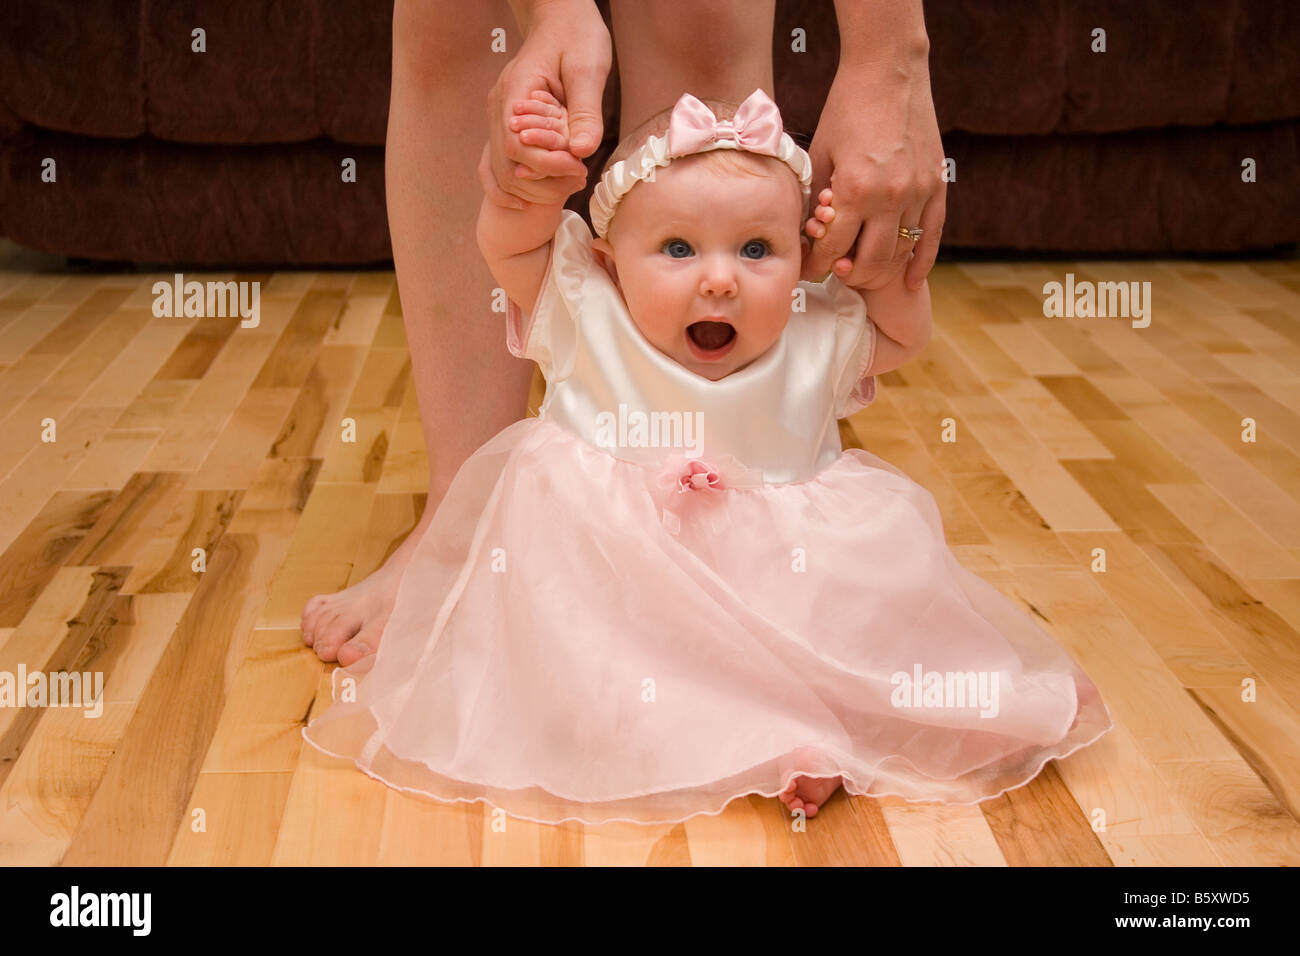 Baby sitting on floor looking surprised with mother holding her hands while learning to walk - Stock Image